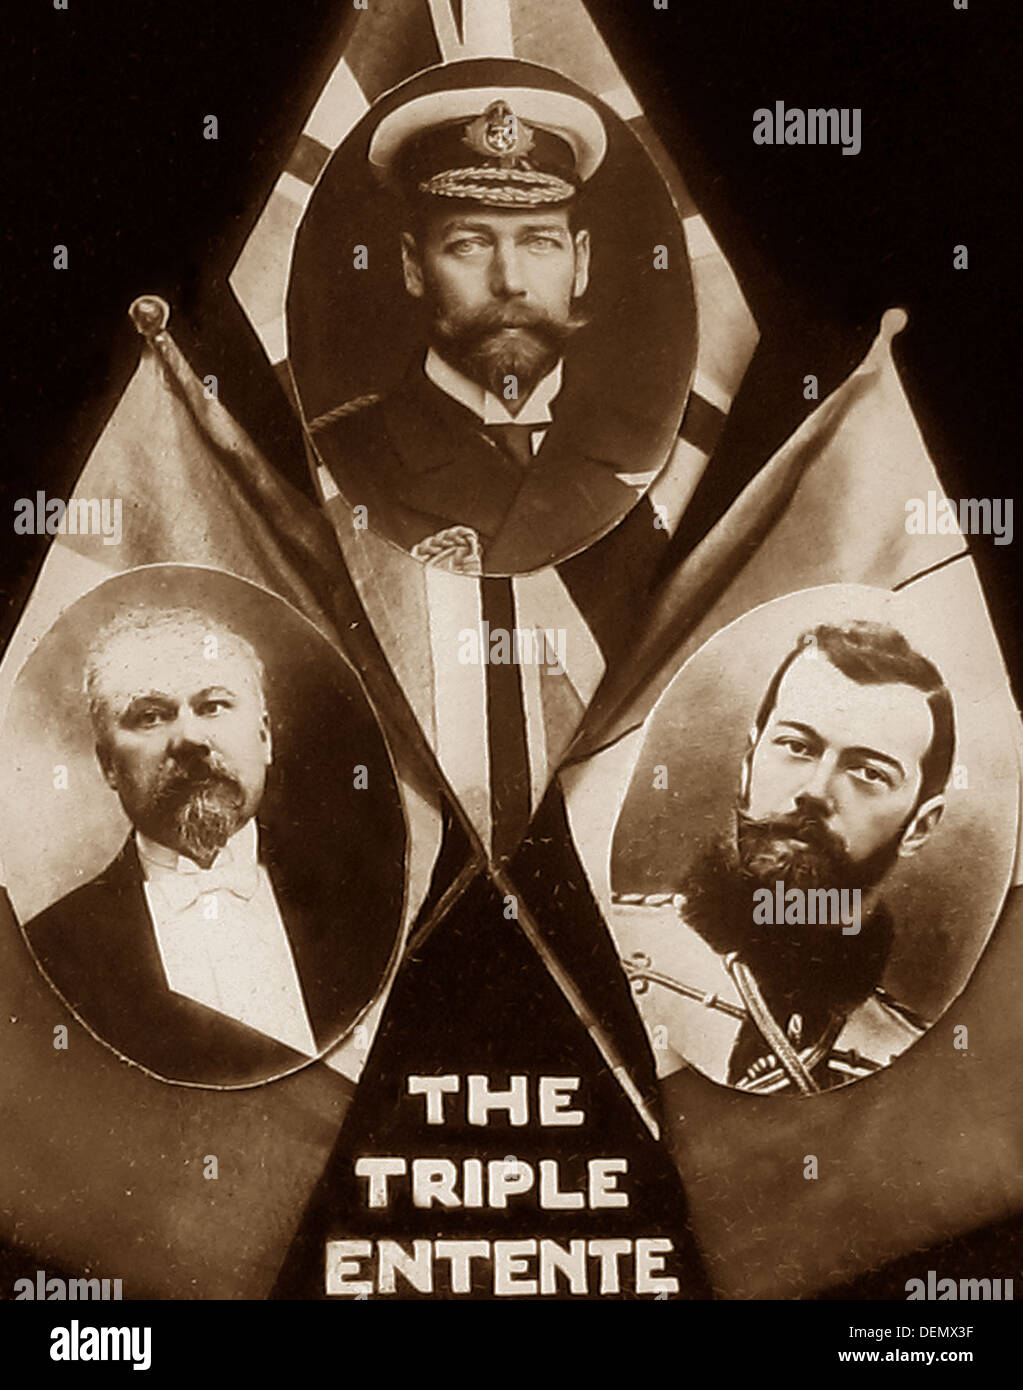 The Triple Entente during WW1 - Stock Image